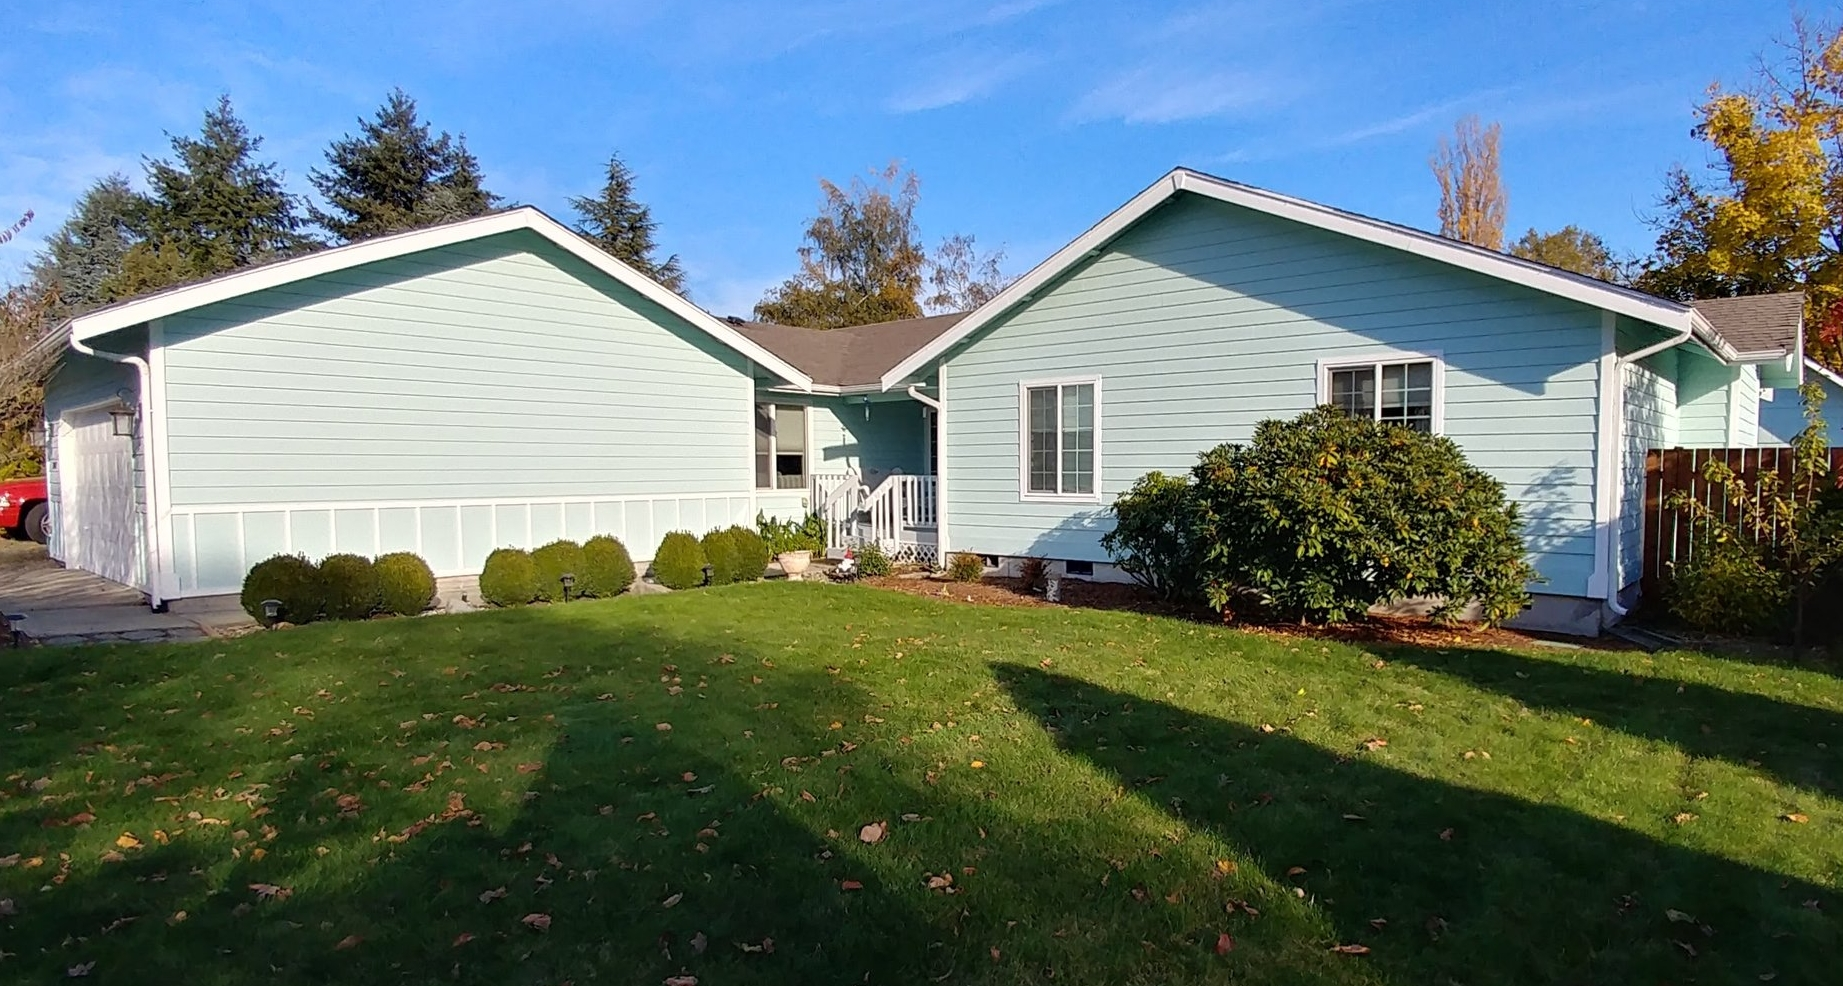 - 1200-2400 sq. ft. home is likely to cost$3,500-$5,500